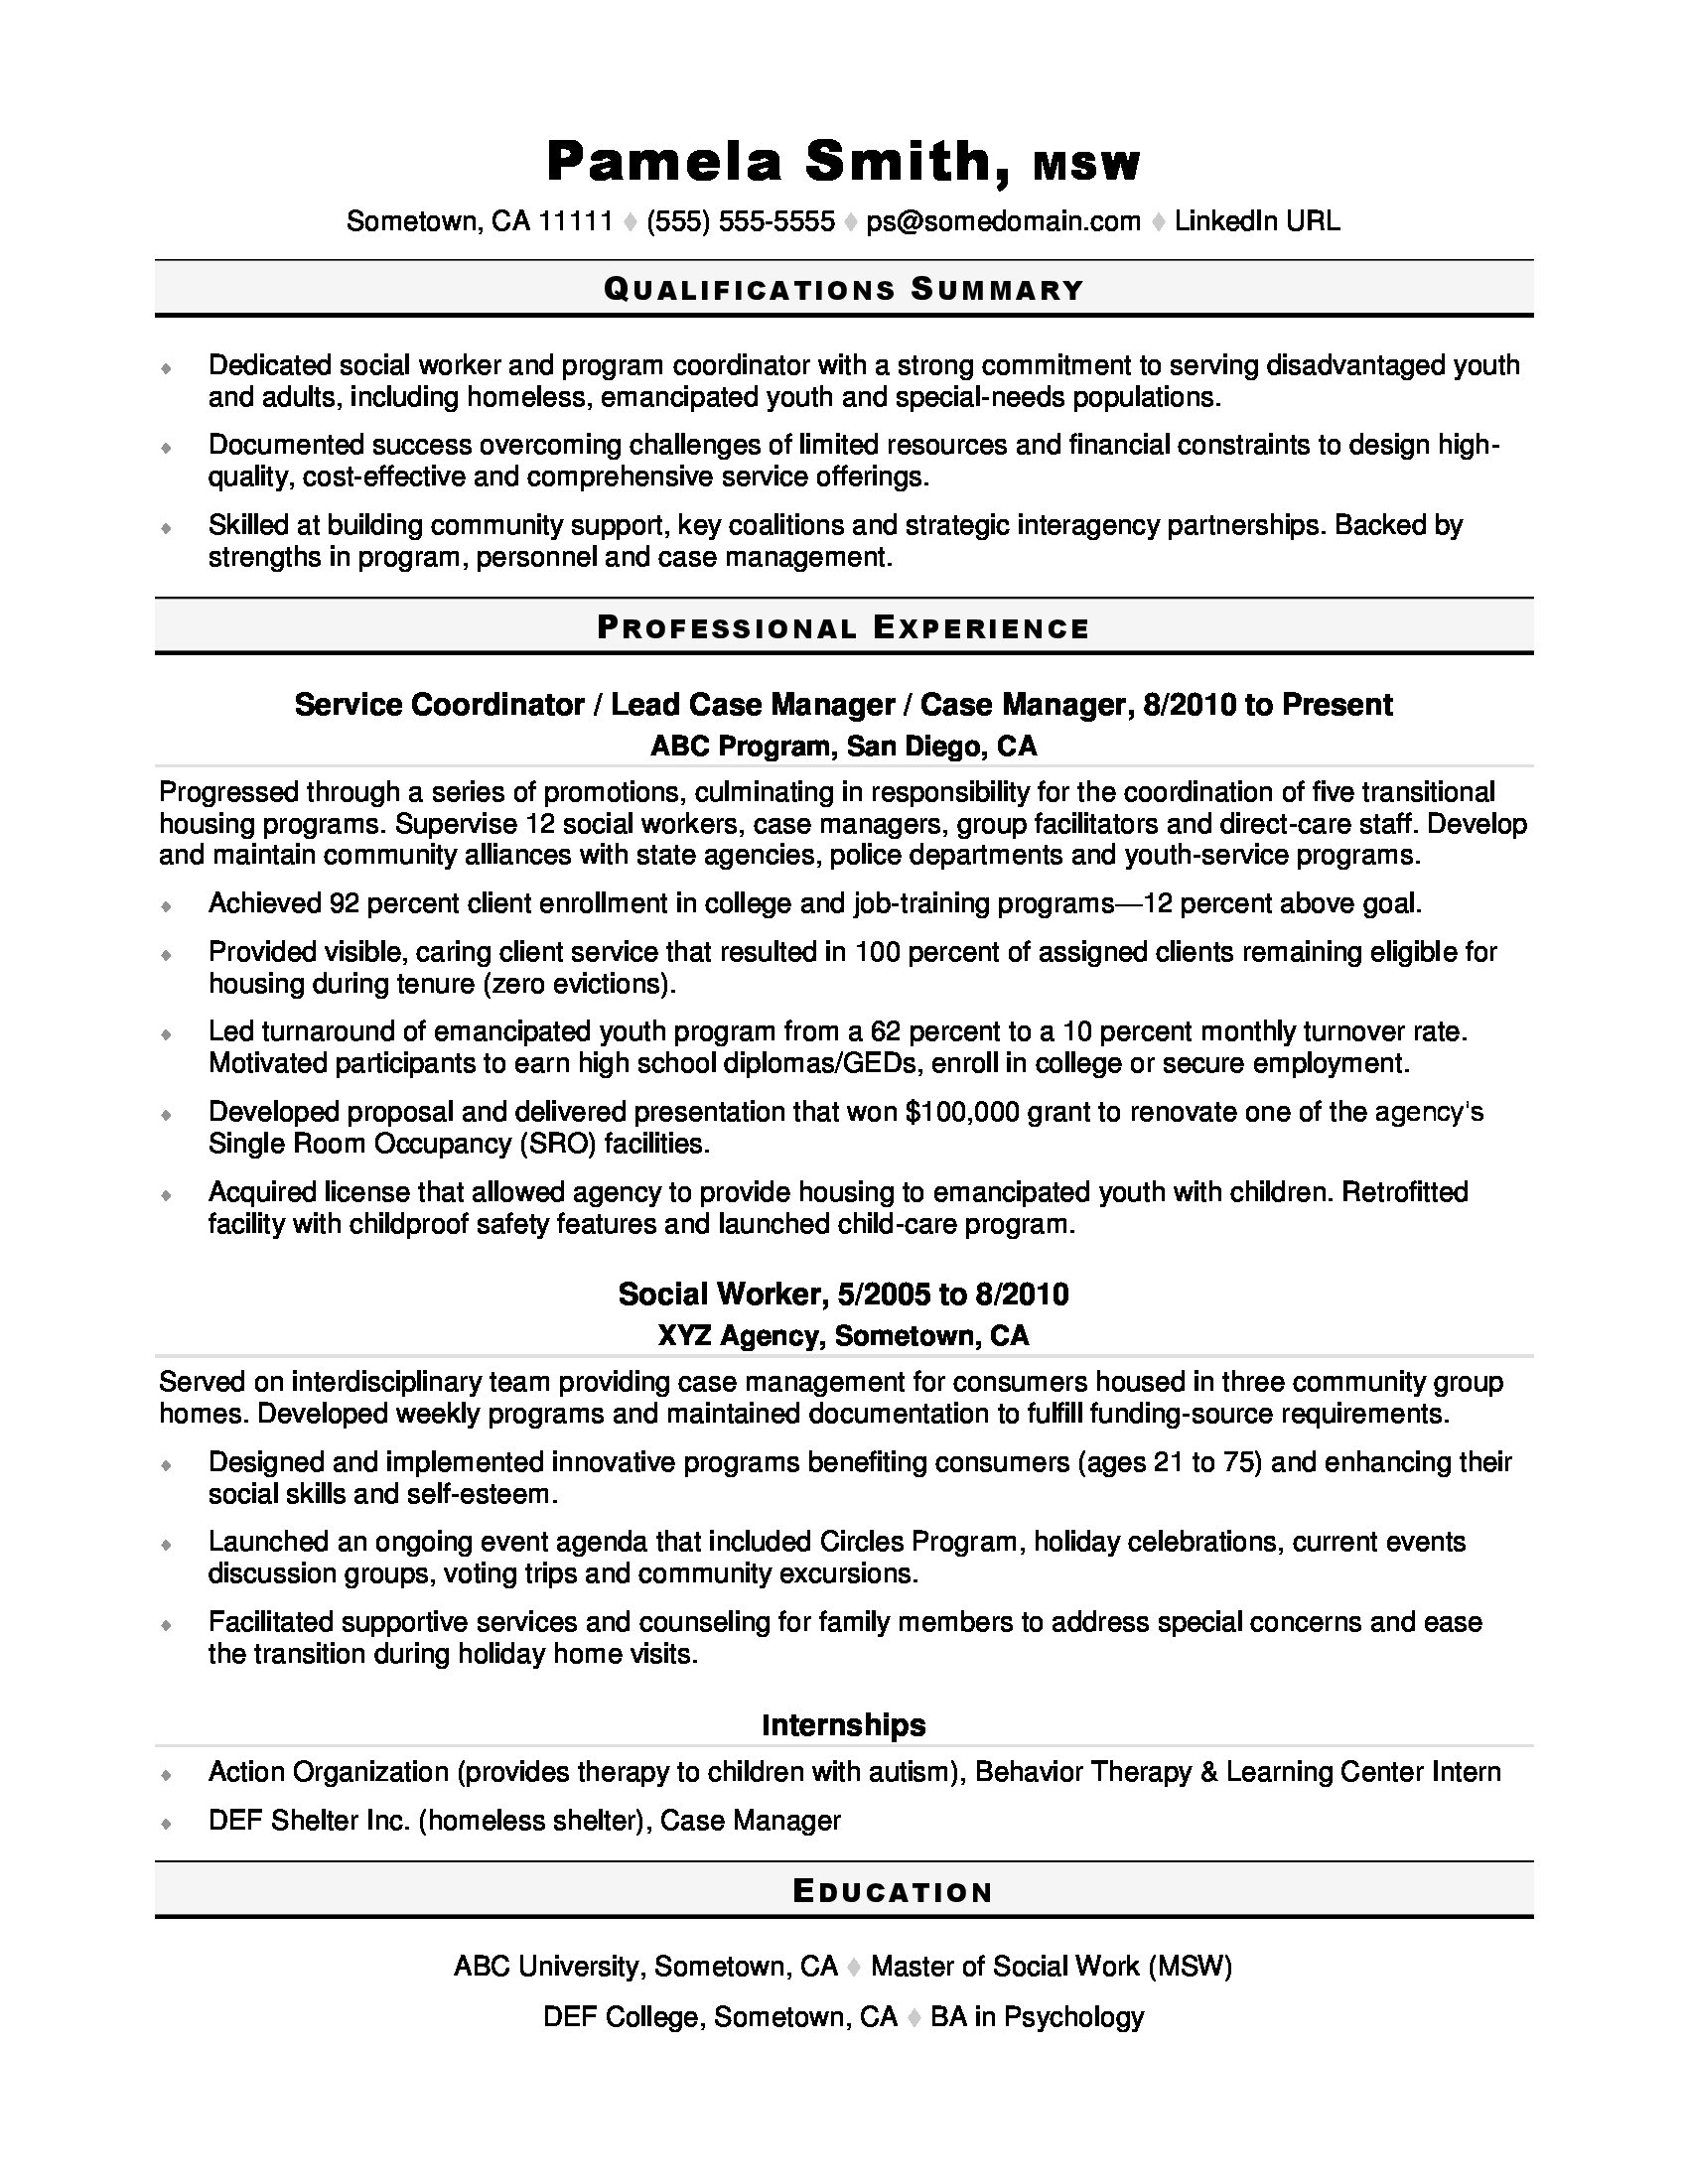 Social Work Resume Template sample social work resumes Sample Resume For A Social Worker